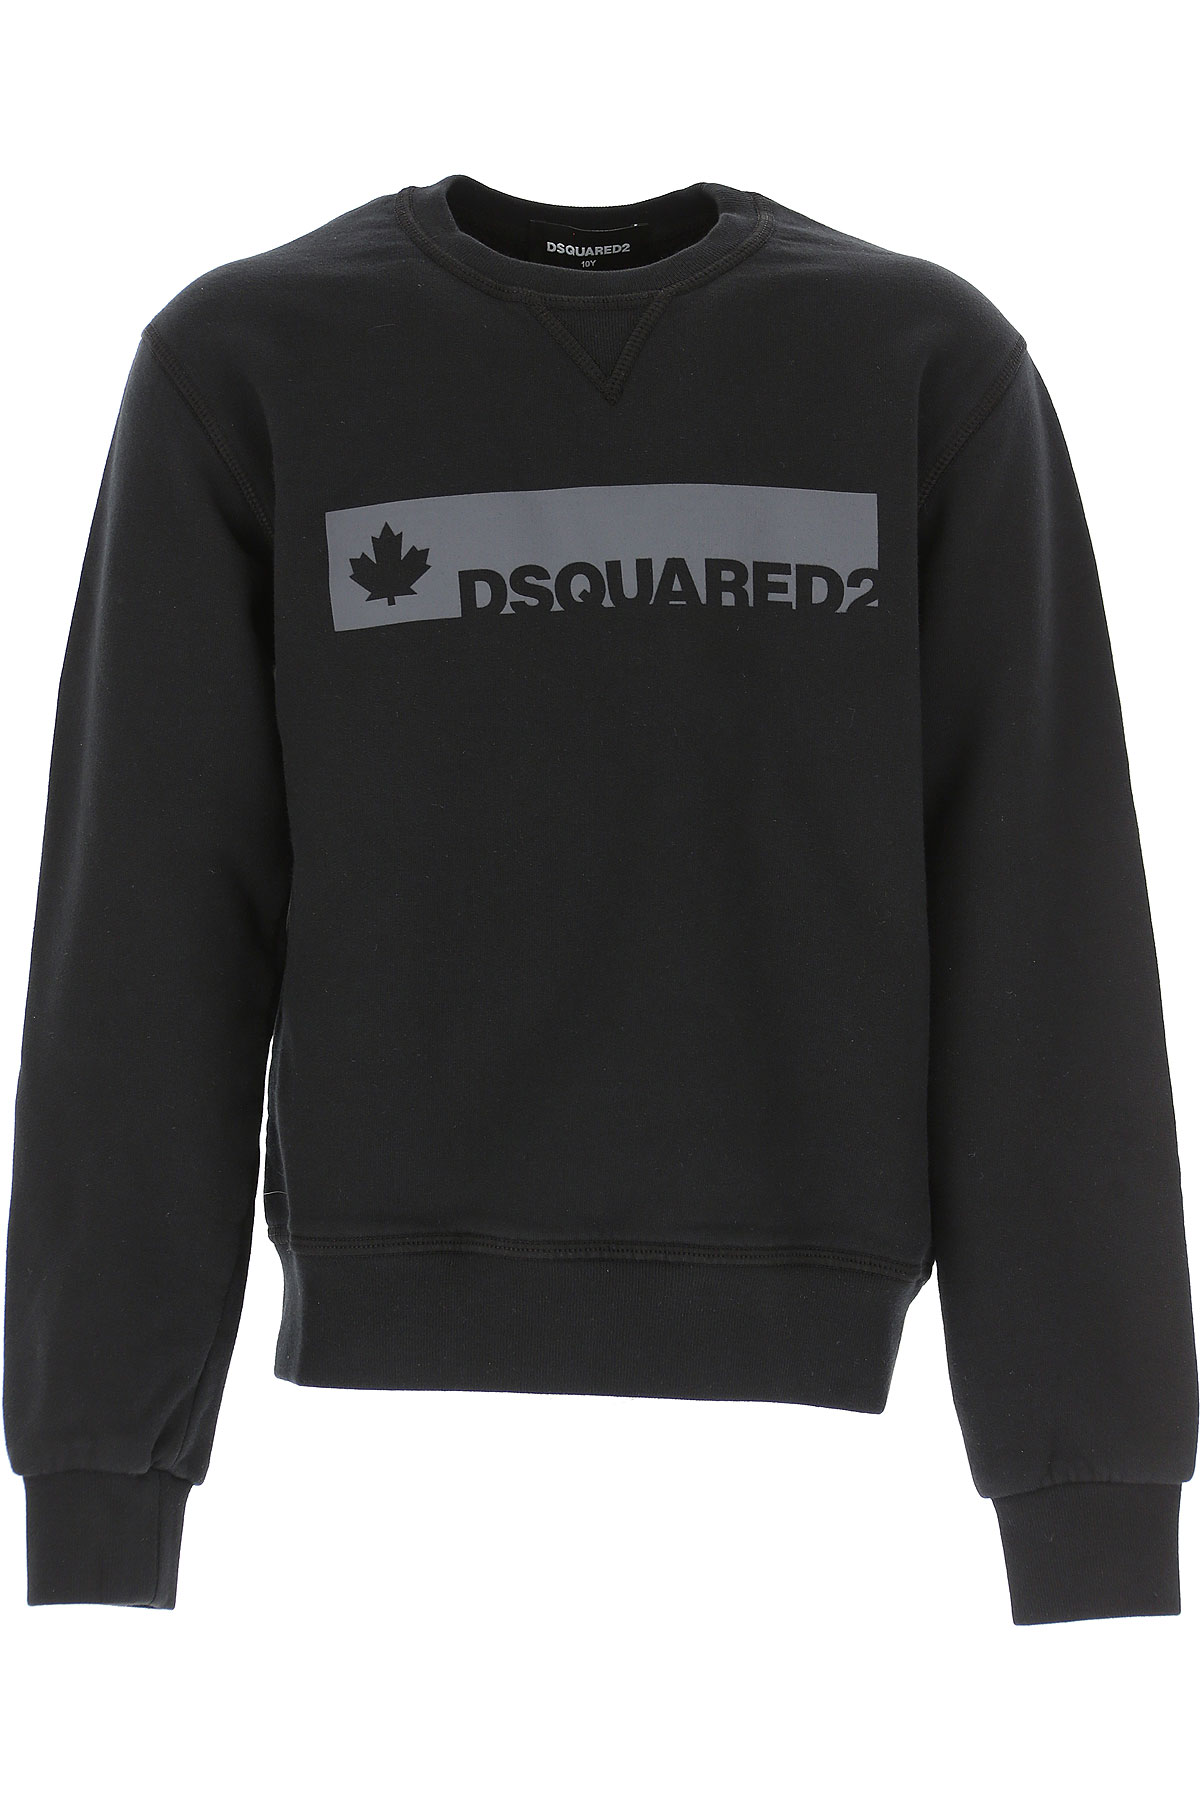 8ff34231d86 dsquared2 kids sweatshirts   hoodies for boys on sale